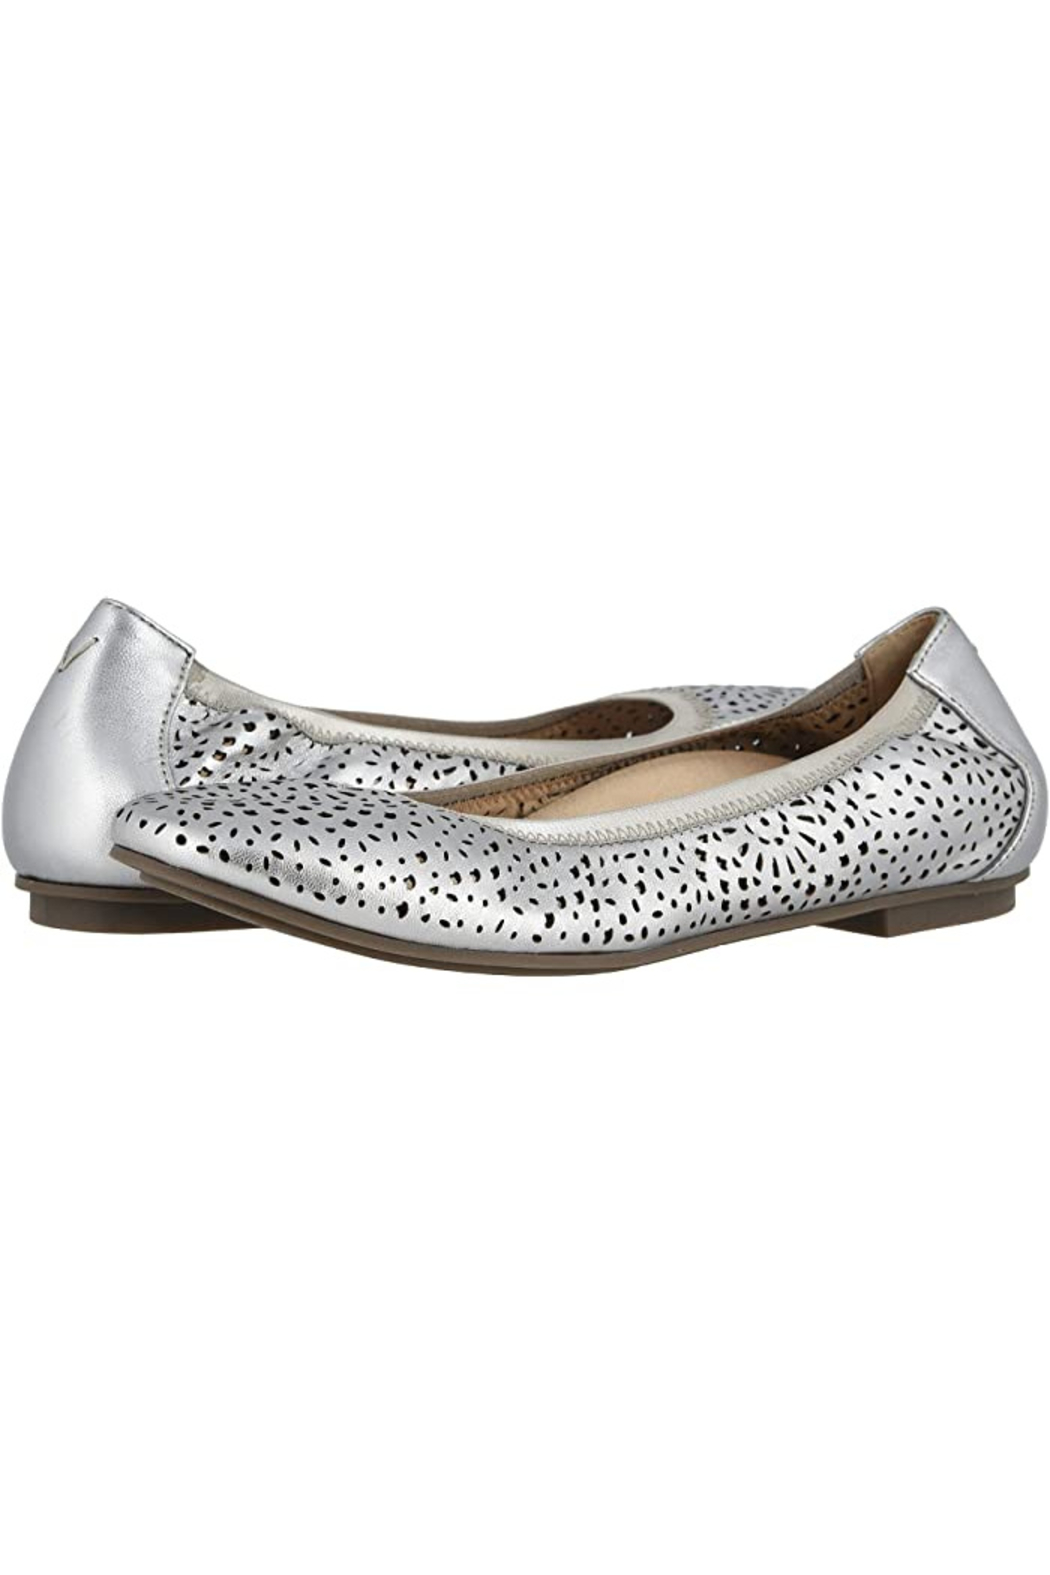 Vionic Robyn Perf Ballet Flat - Front Full Image